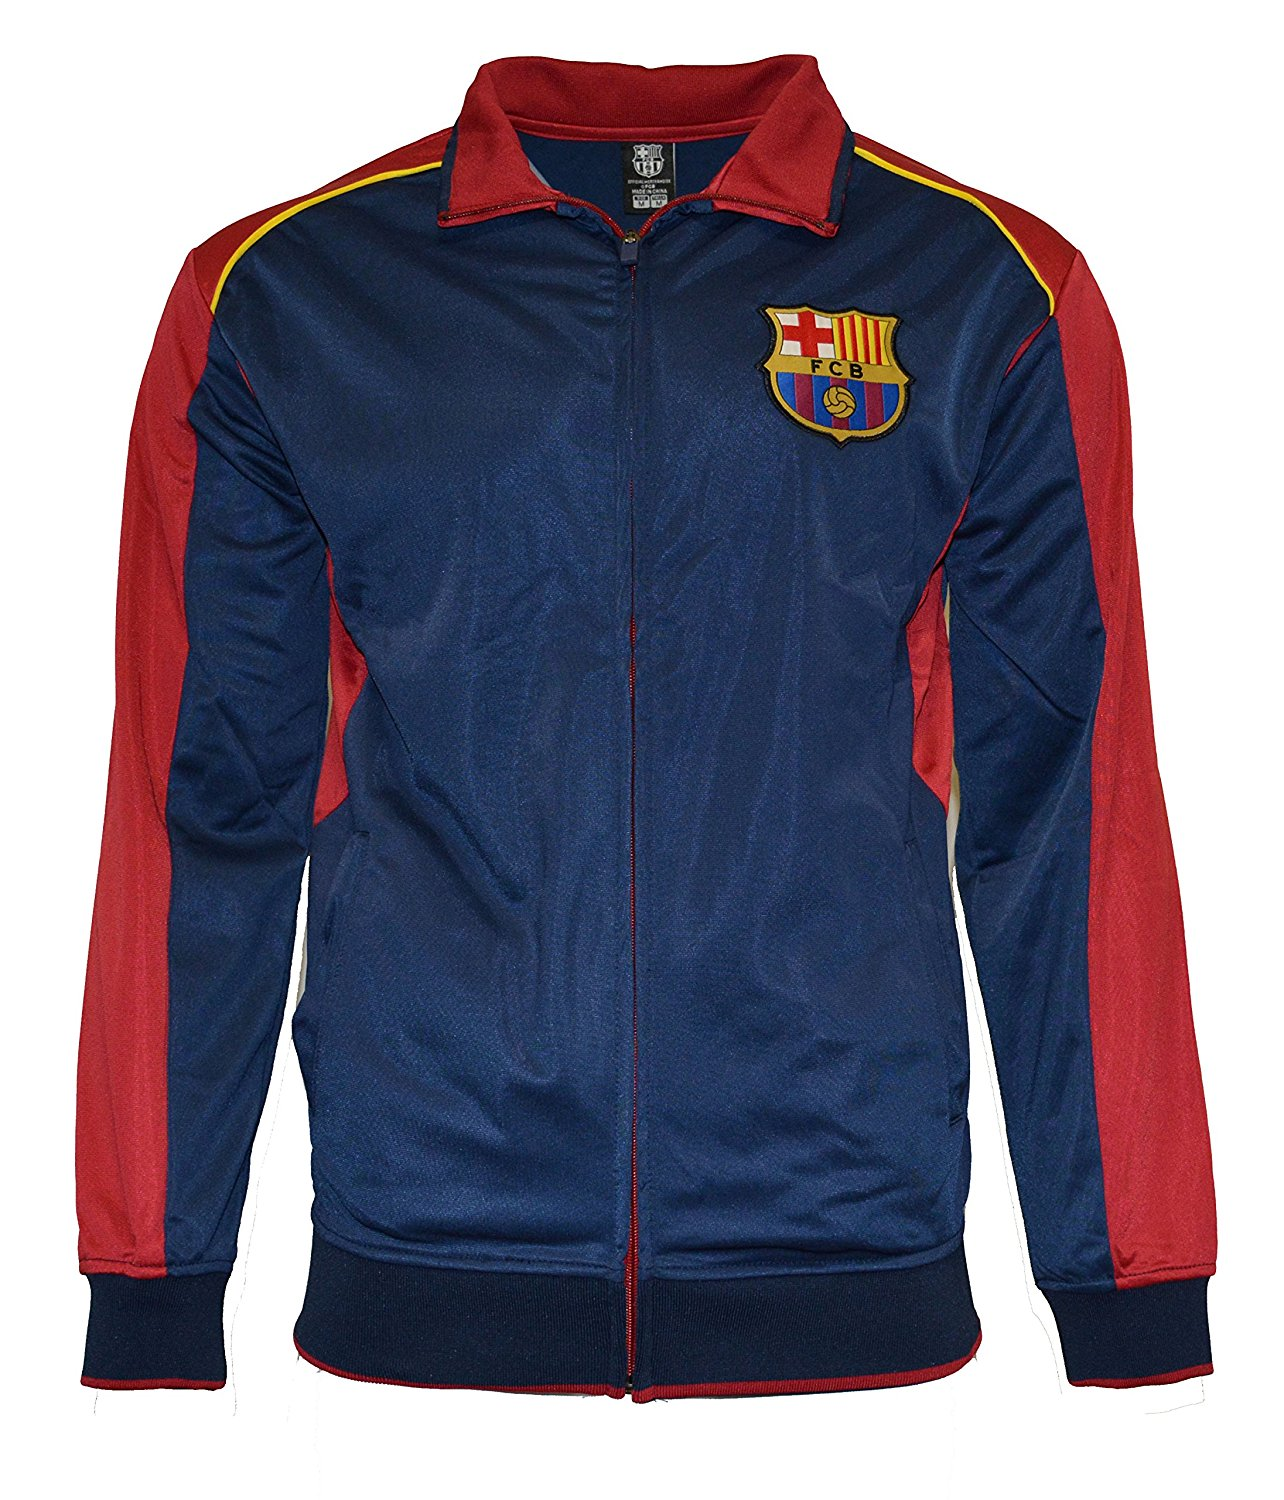 84f895ca09b Get Quotations · Fc Barcelona Jacket Track Soccer Adult Sizes Soccer Football  Official Merchandise